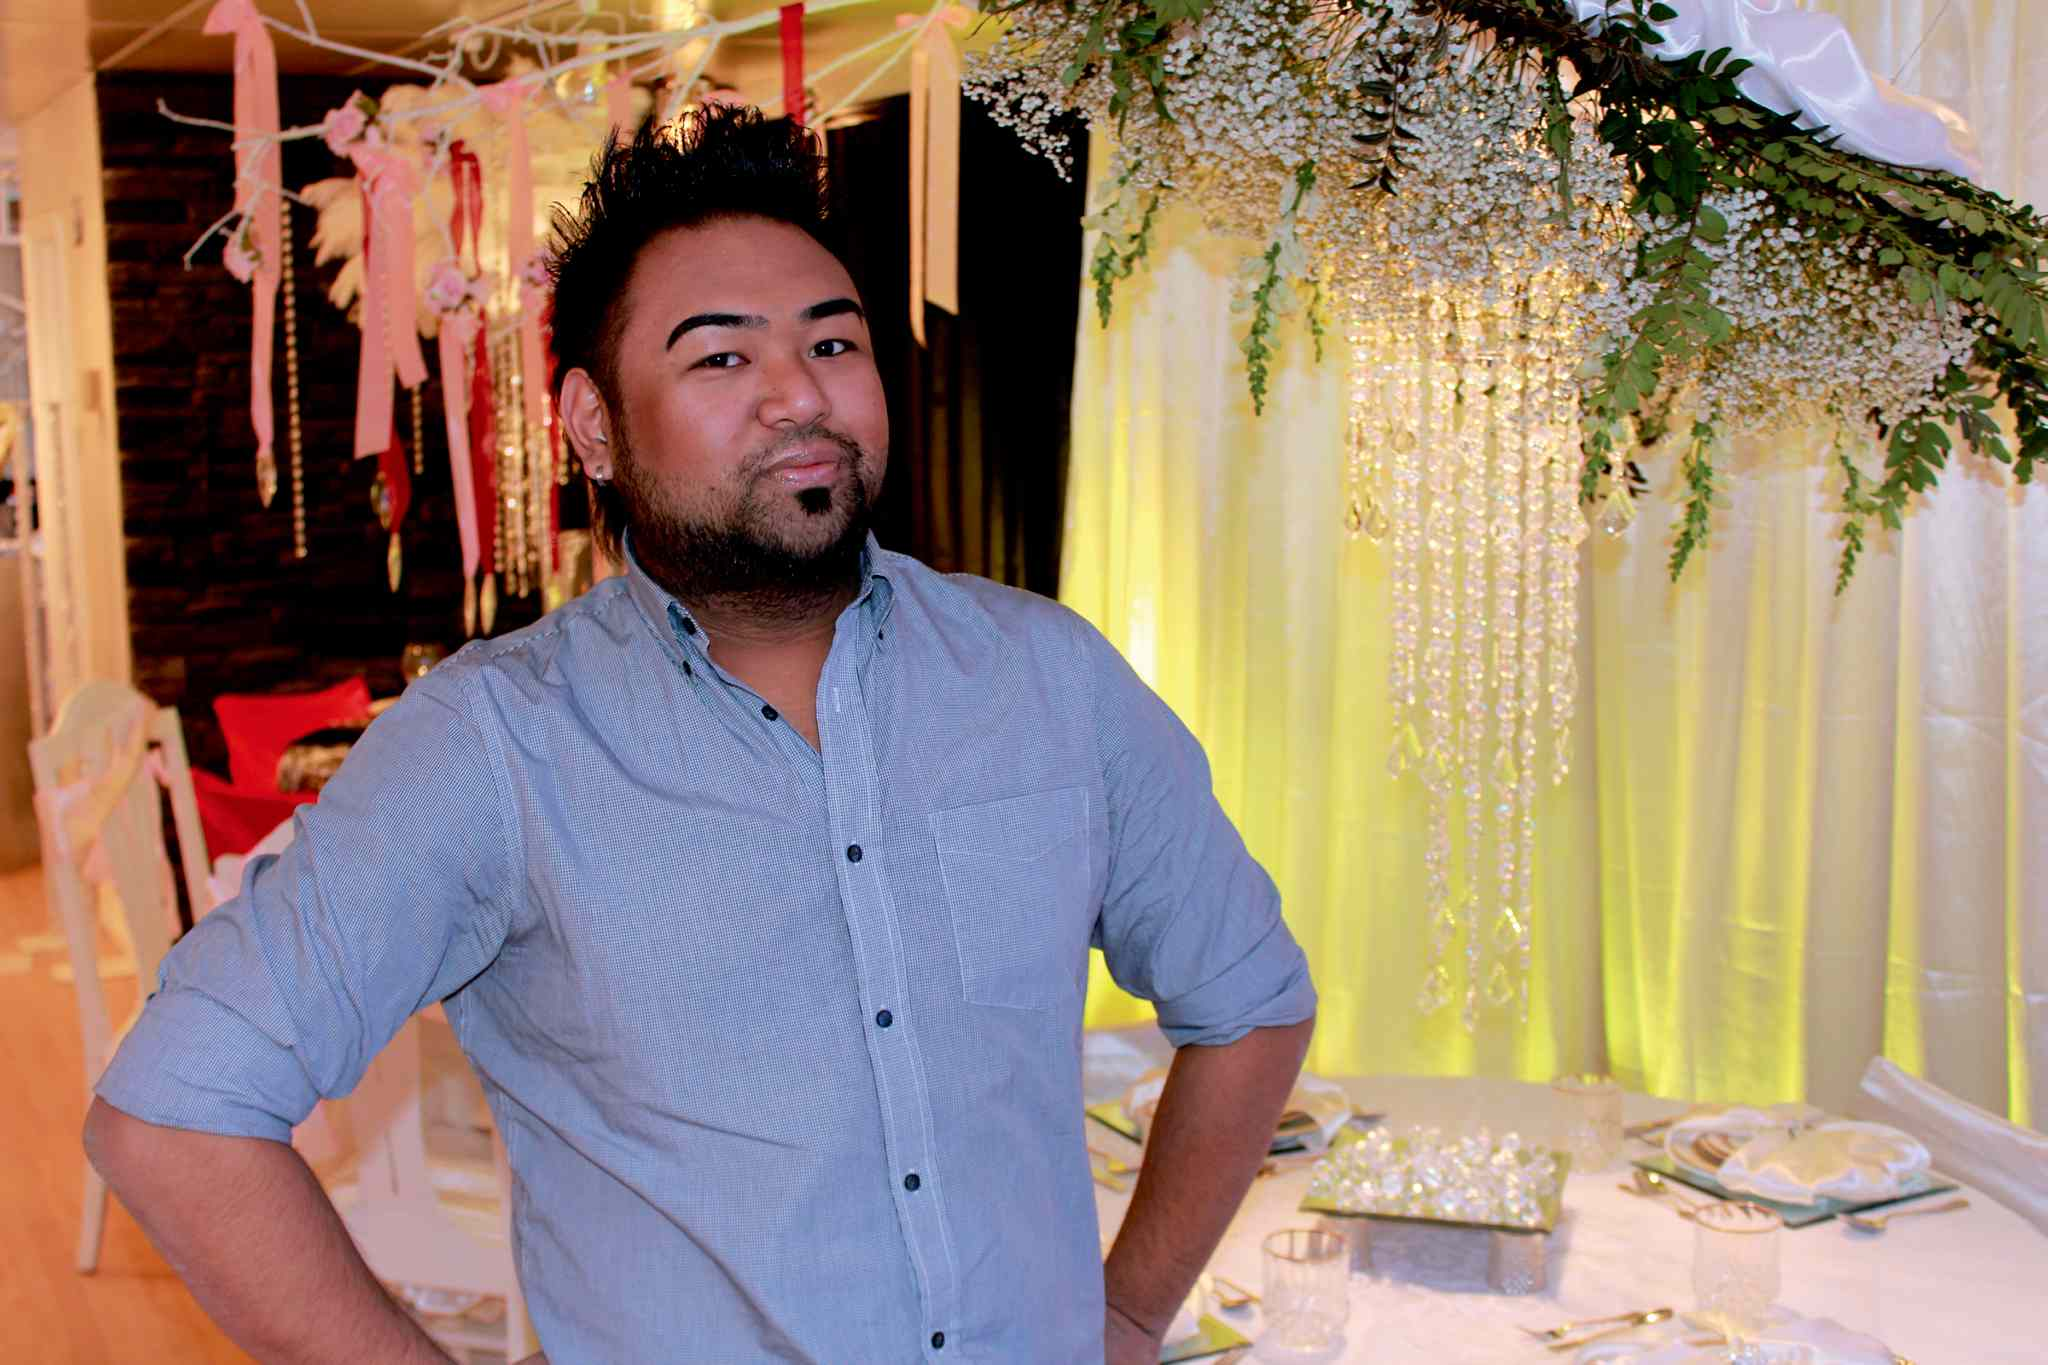 Justin Merluza, 24, opened his new business Just in Couture Nov. 1. He specializes in high-end weddings.